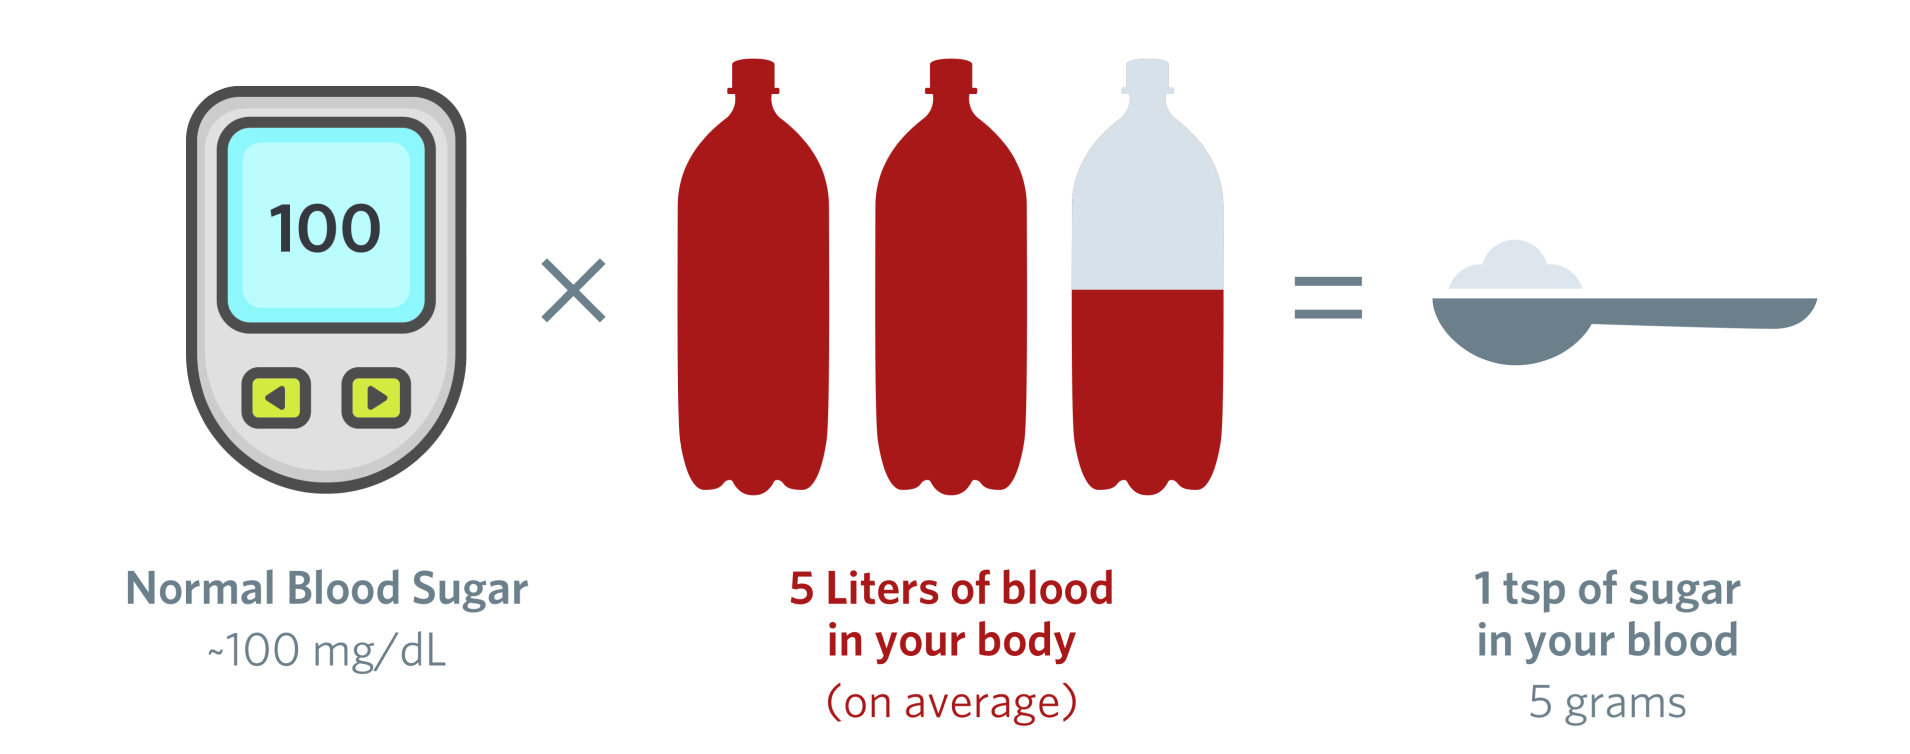 A diagram showing that there is on average 1 tsp of sugar in your blood at any given time